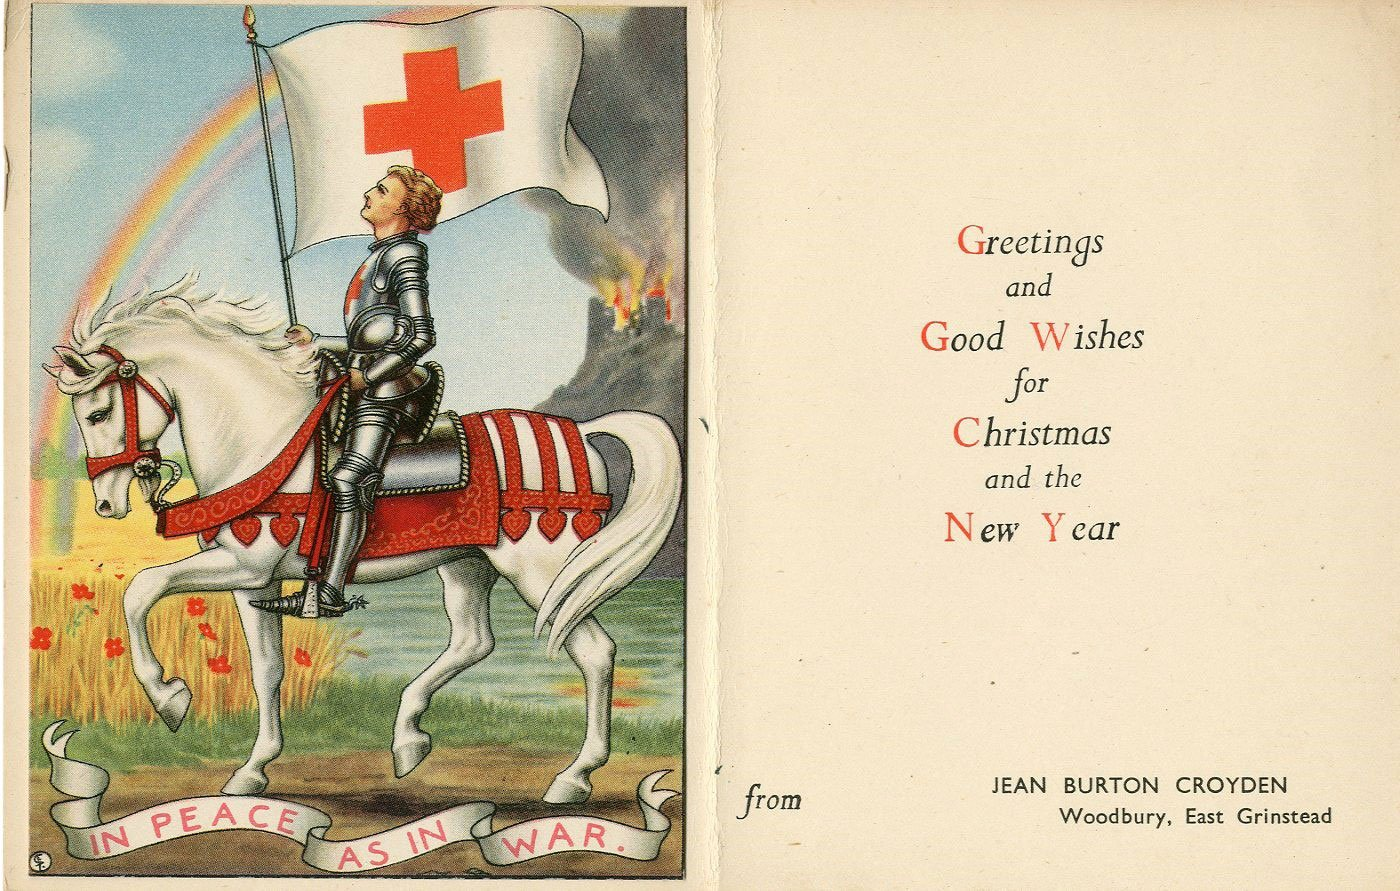 East Grinstead Museum – Christmas Greeting Card from Jean Burton Croyden